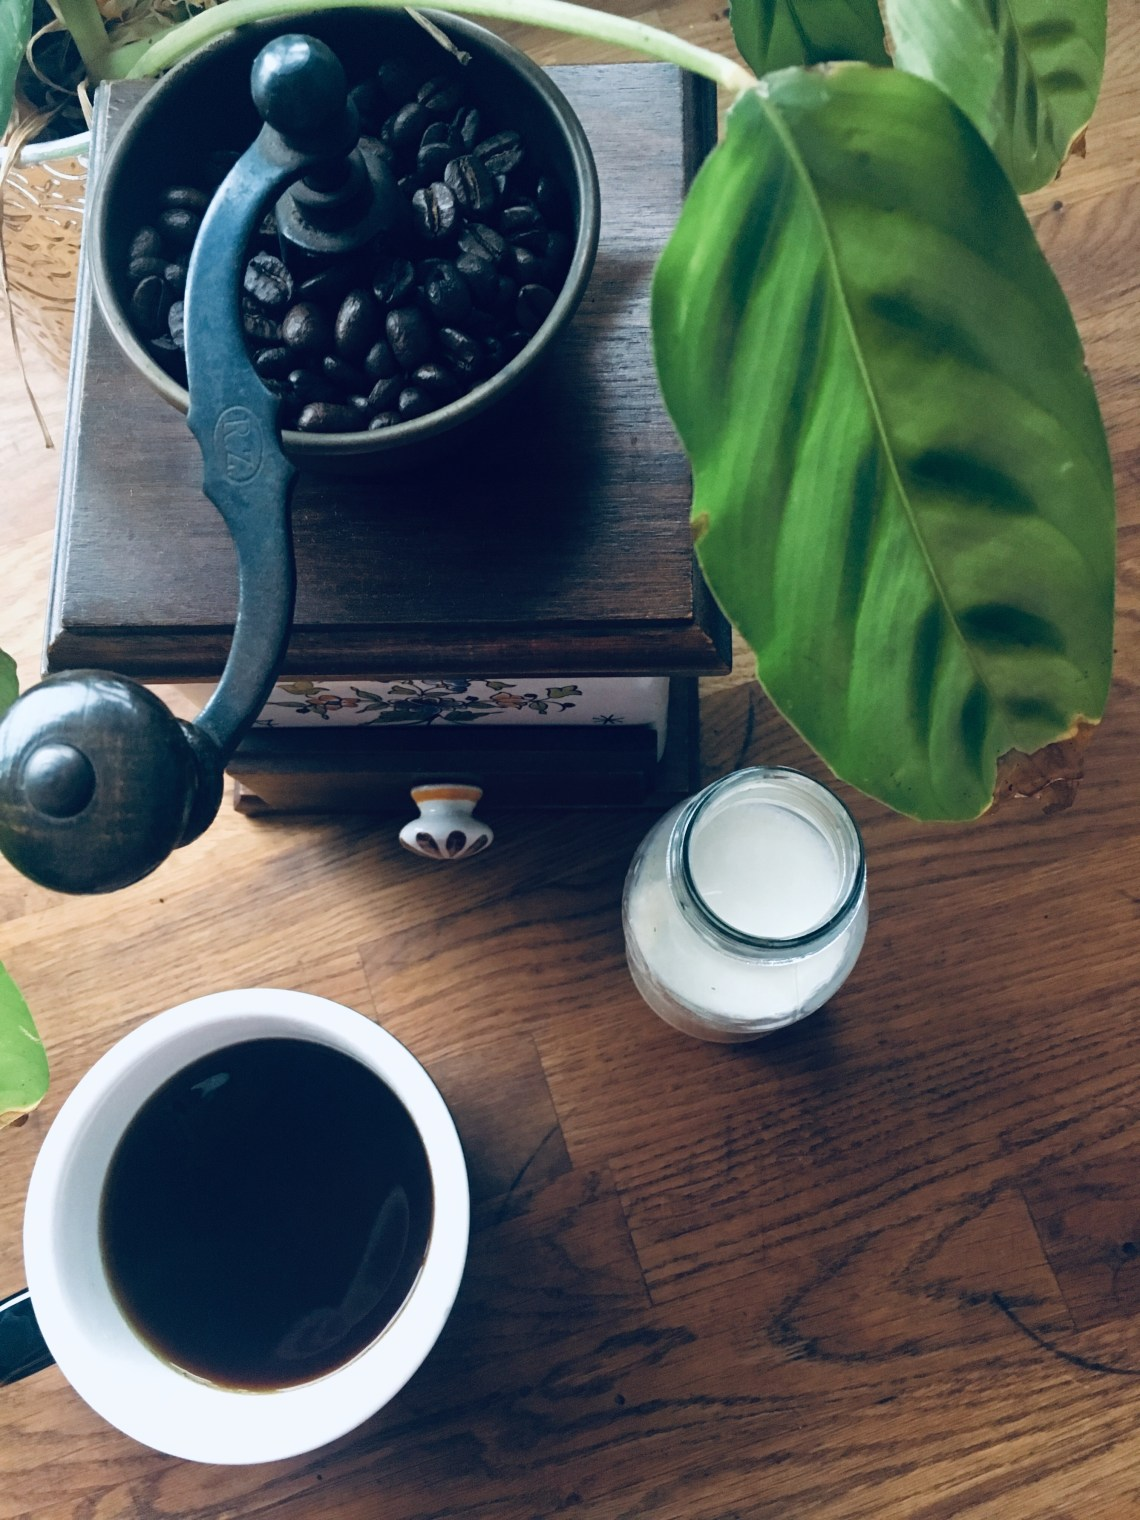 Coffee grinder and plant